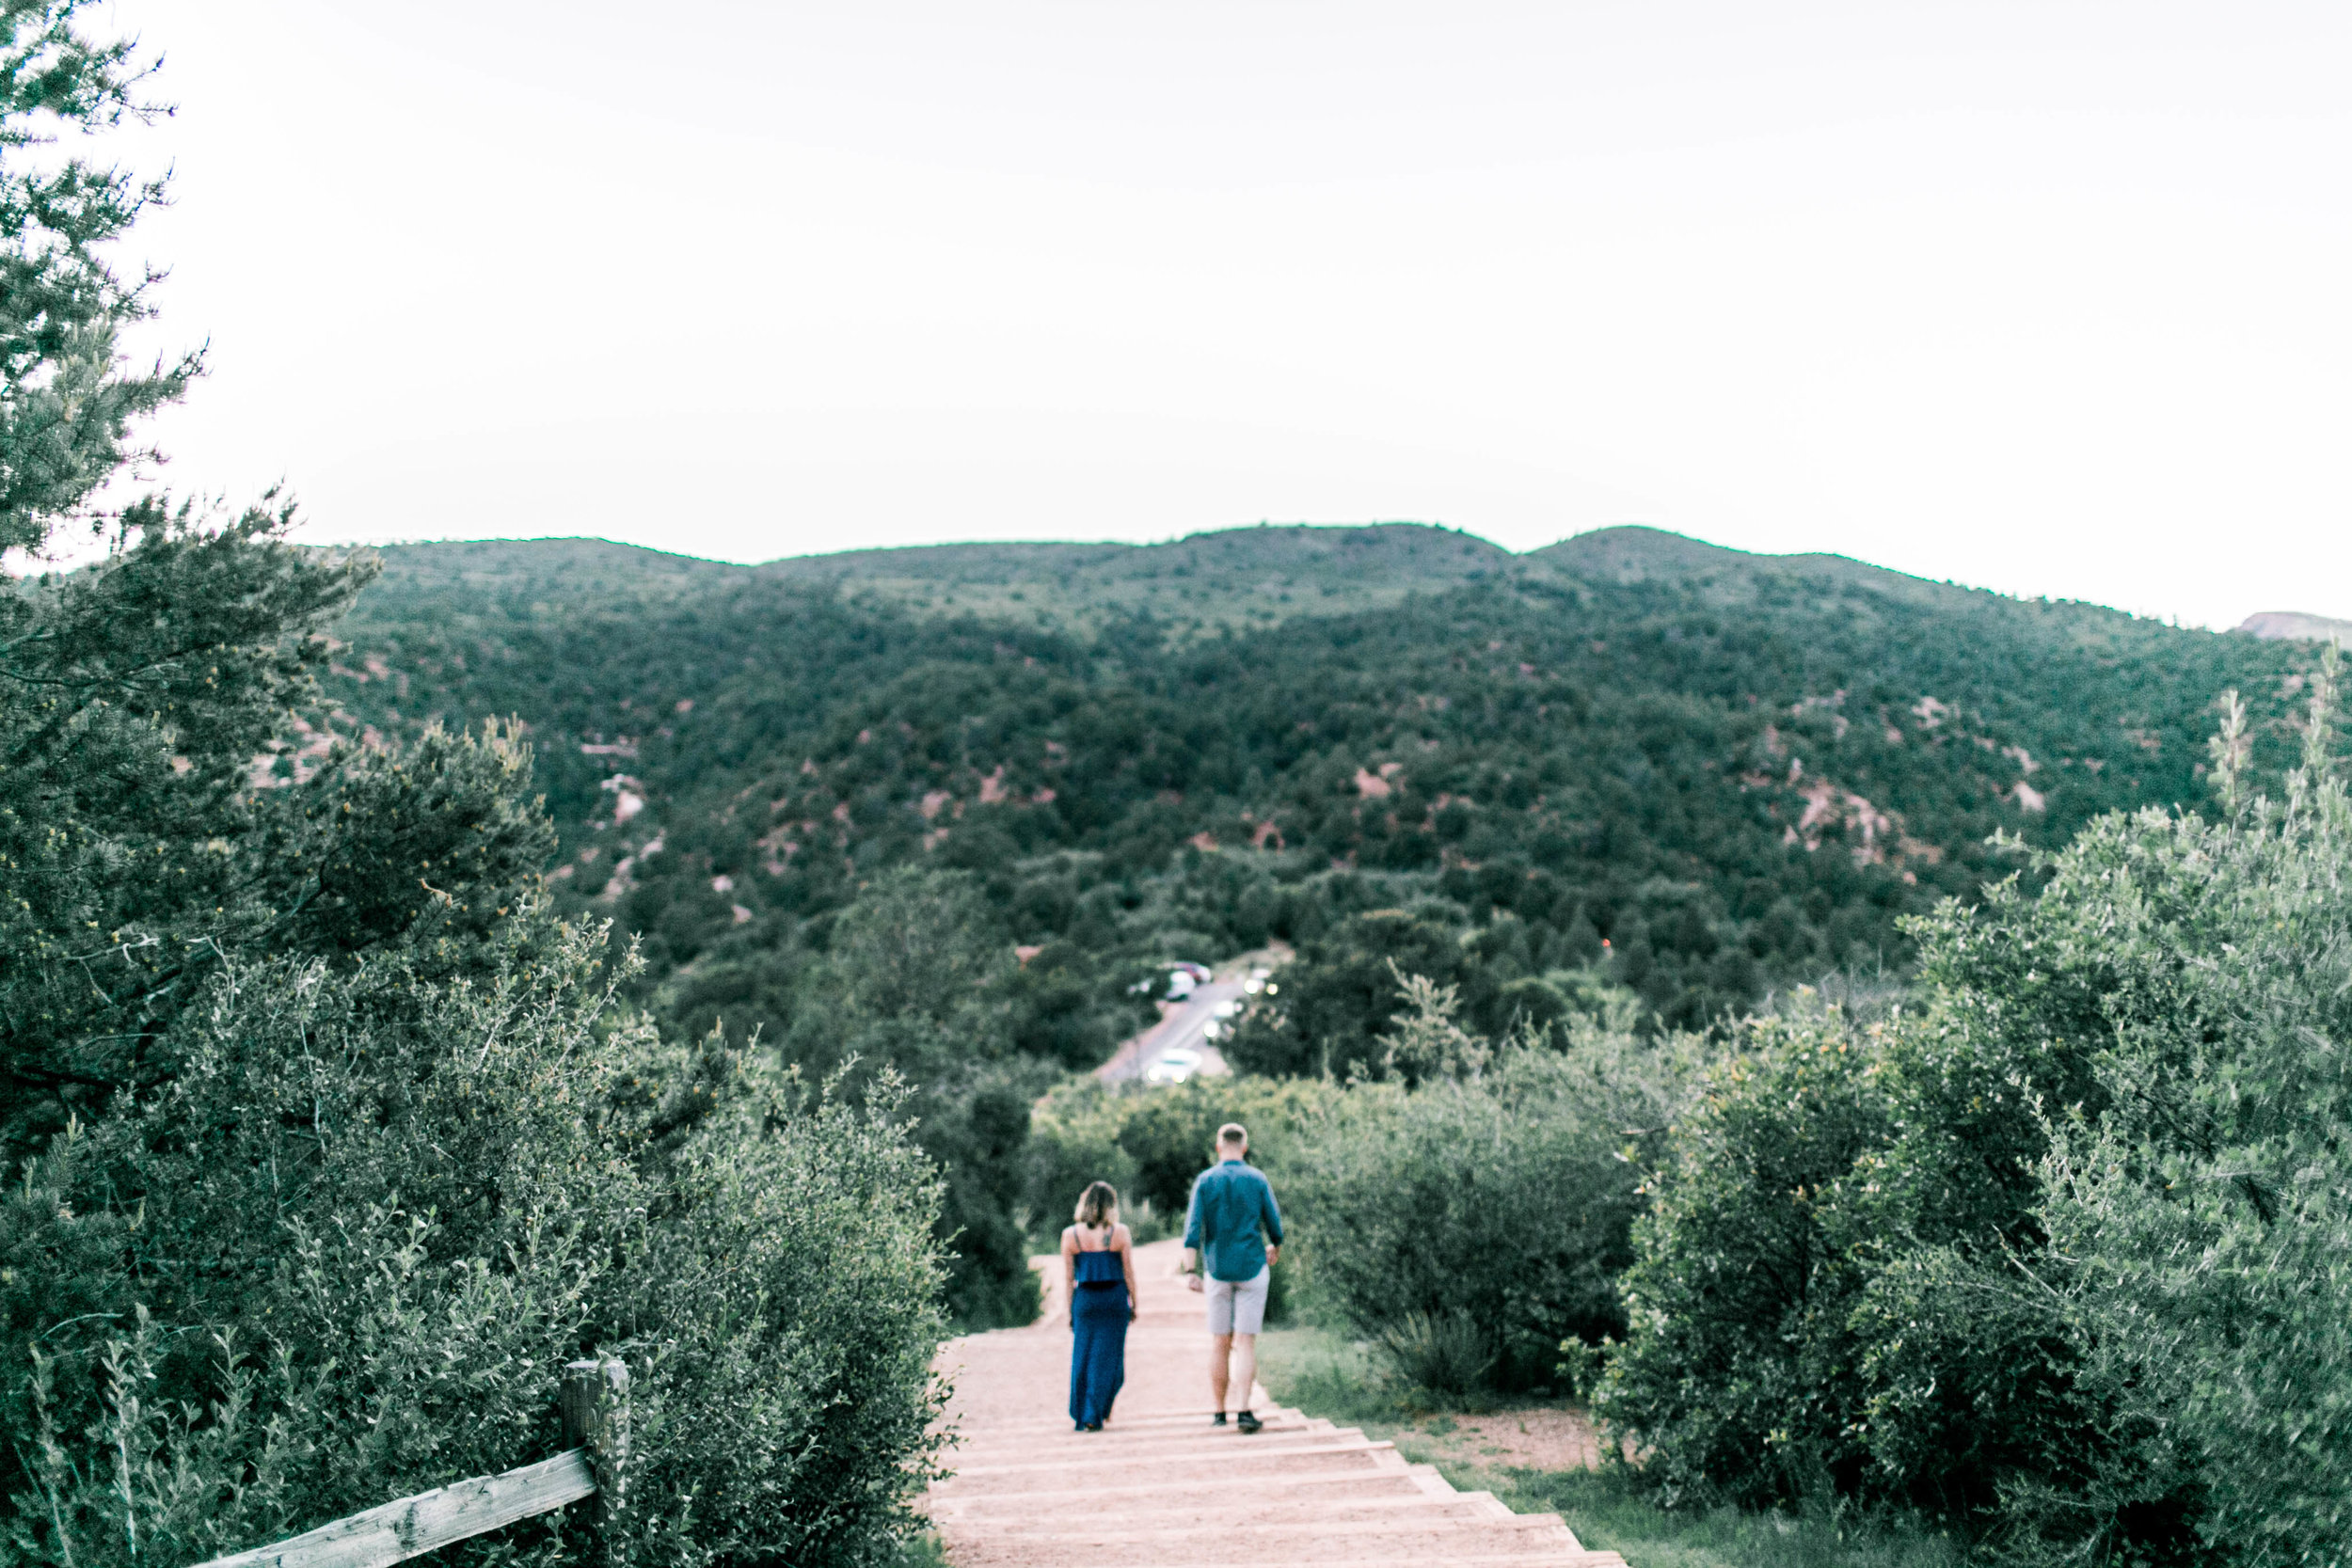 Colorado Springs Engagement Wedding Adventure Photographer - Erin and Jim 40.jpg